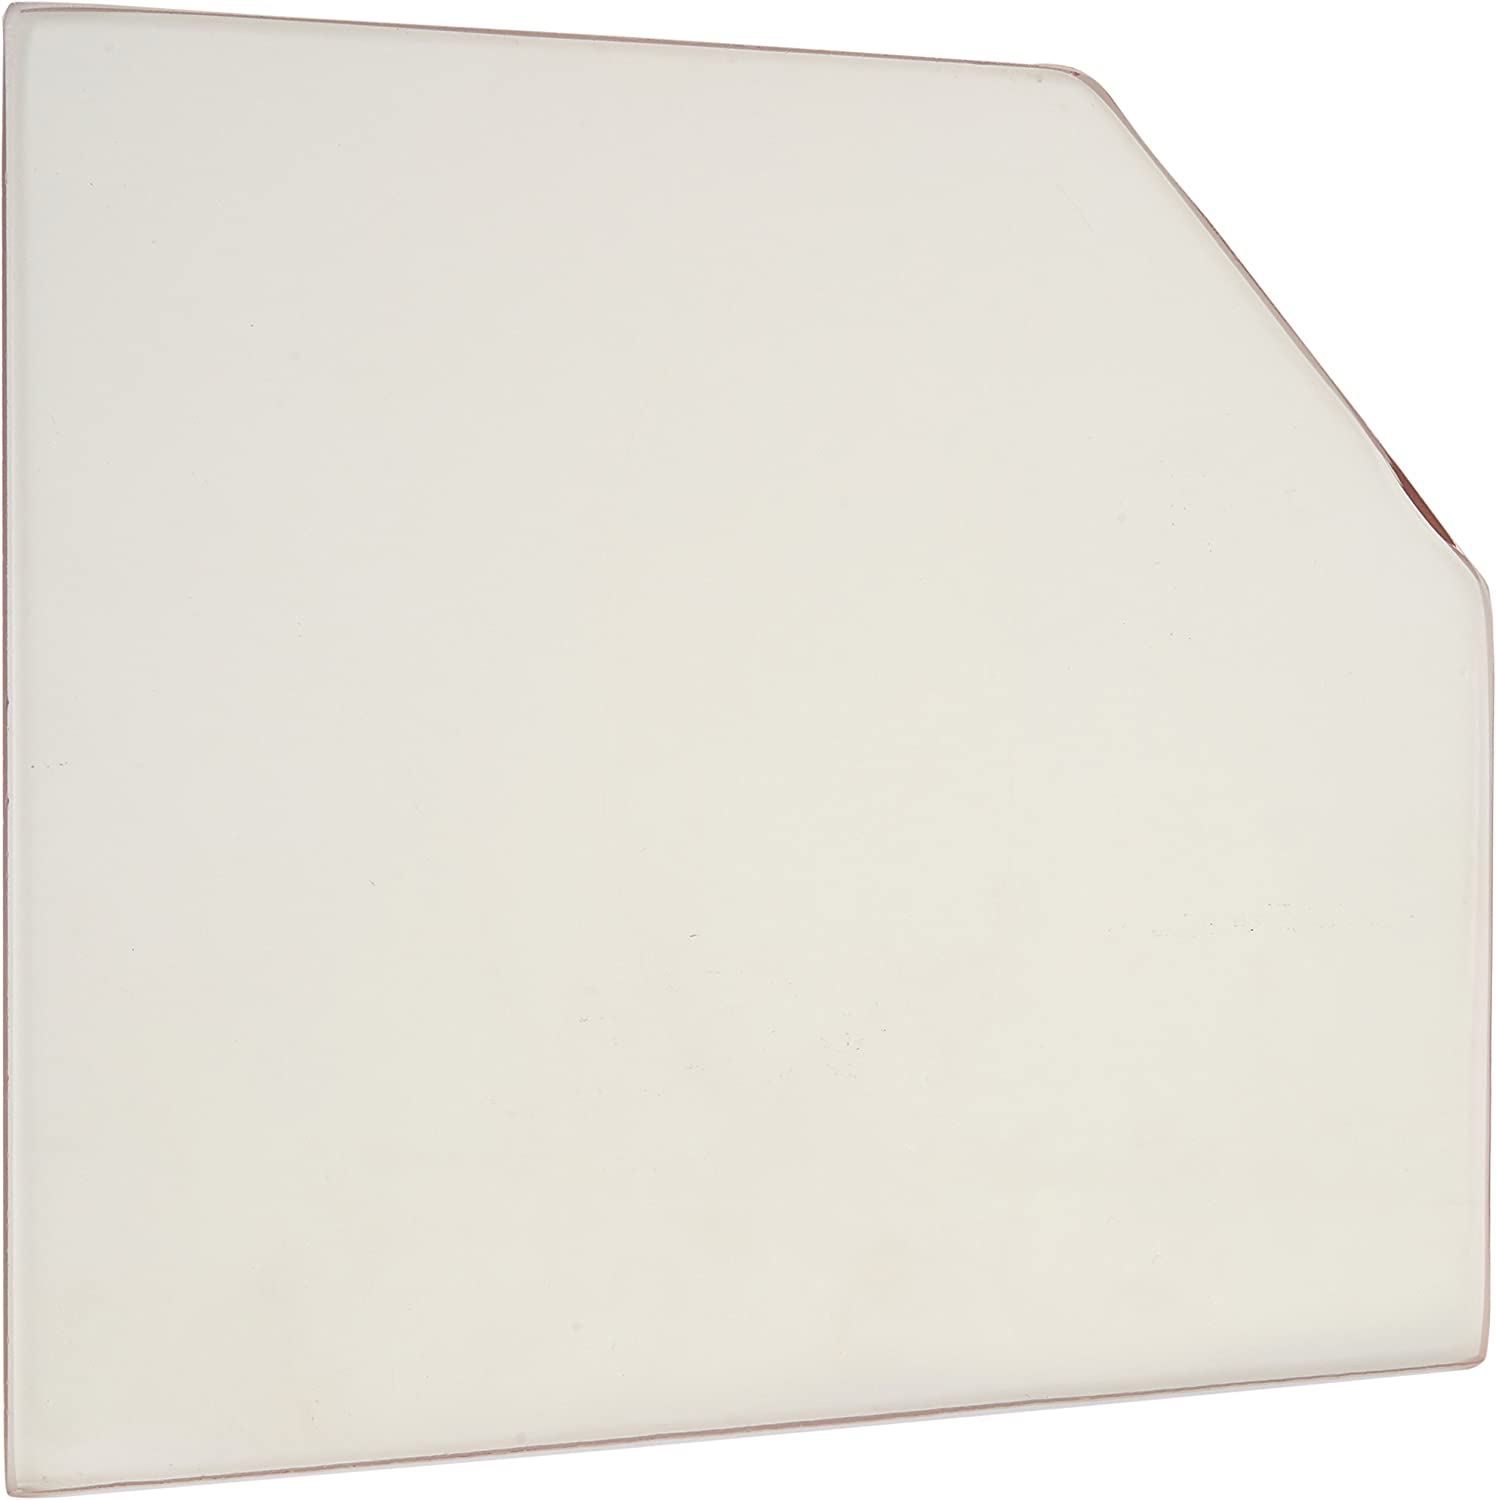 Parkray New Parkray Cumbria MK 2 Stove Replacement Glass 233mm x 184mm